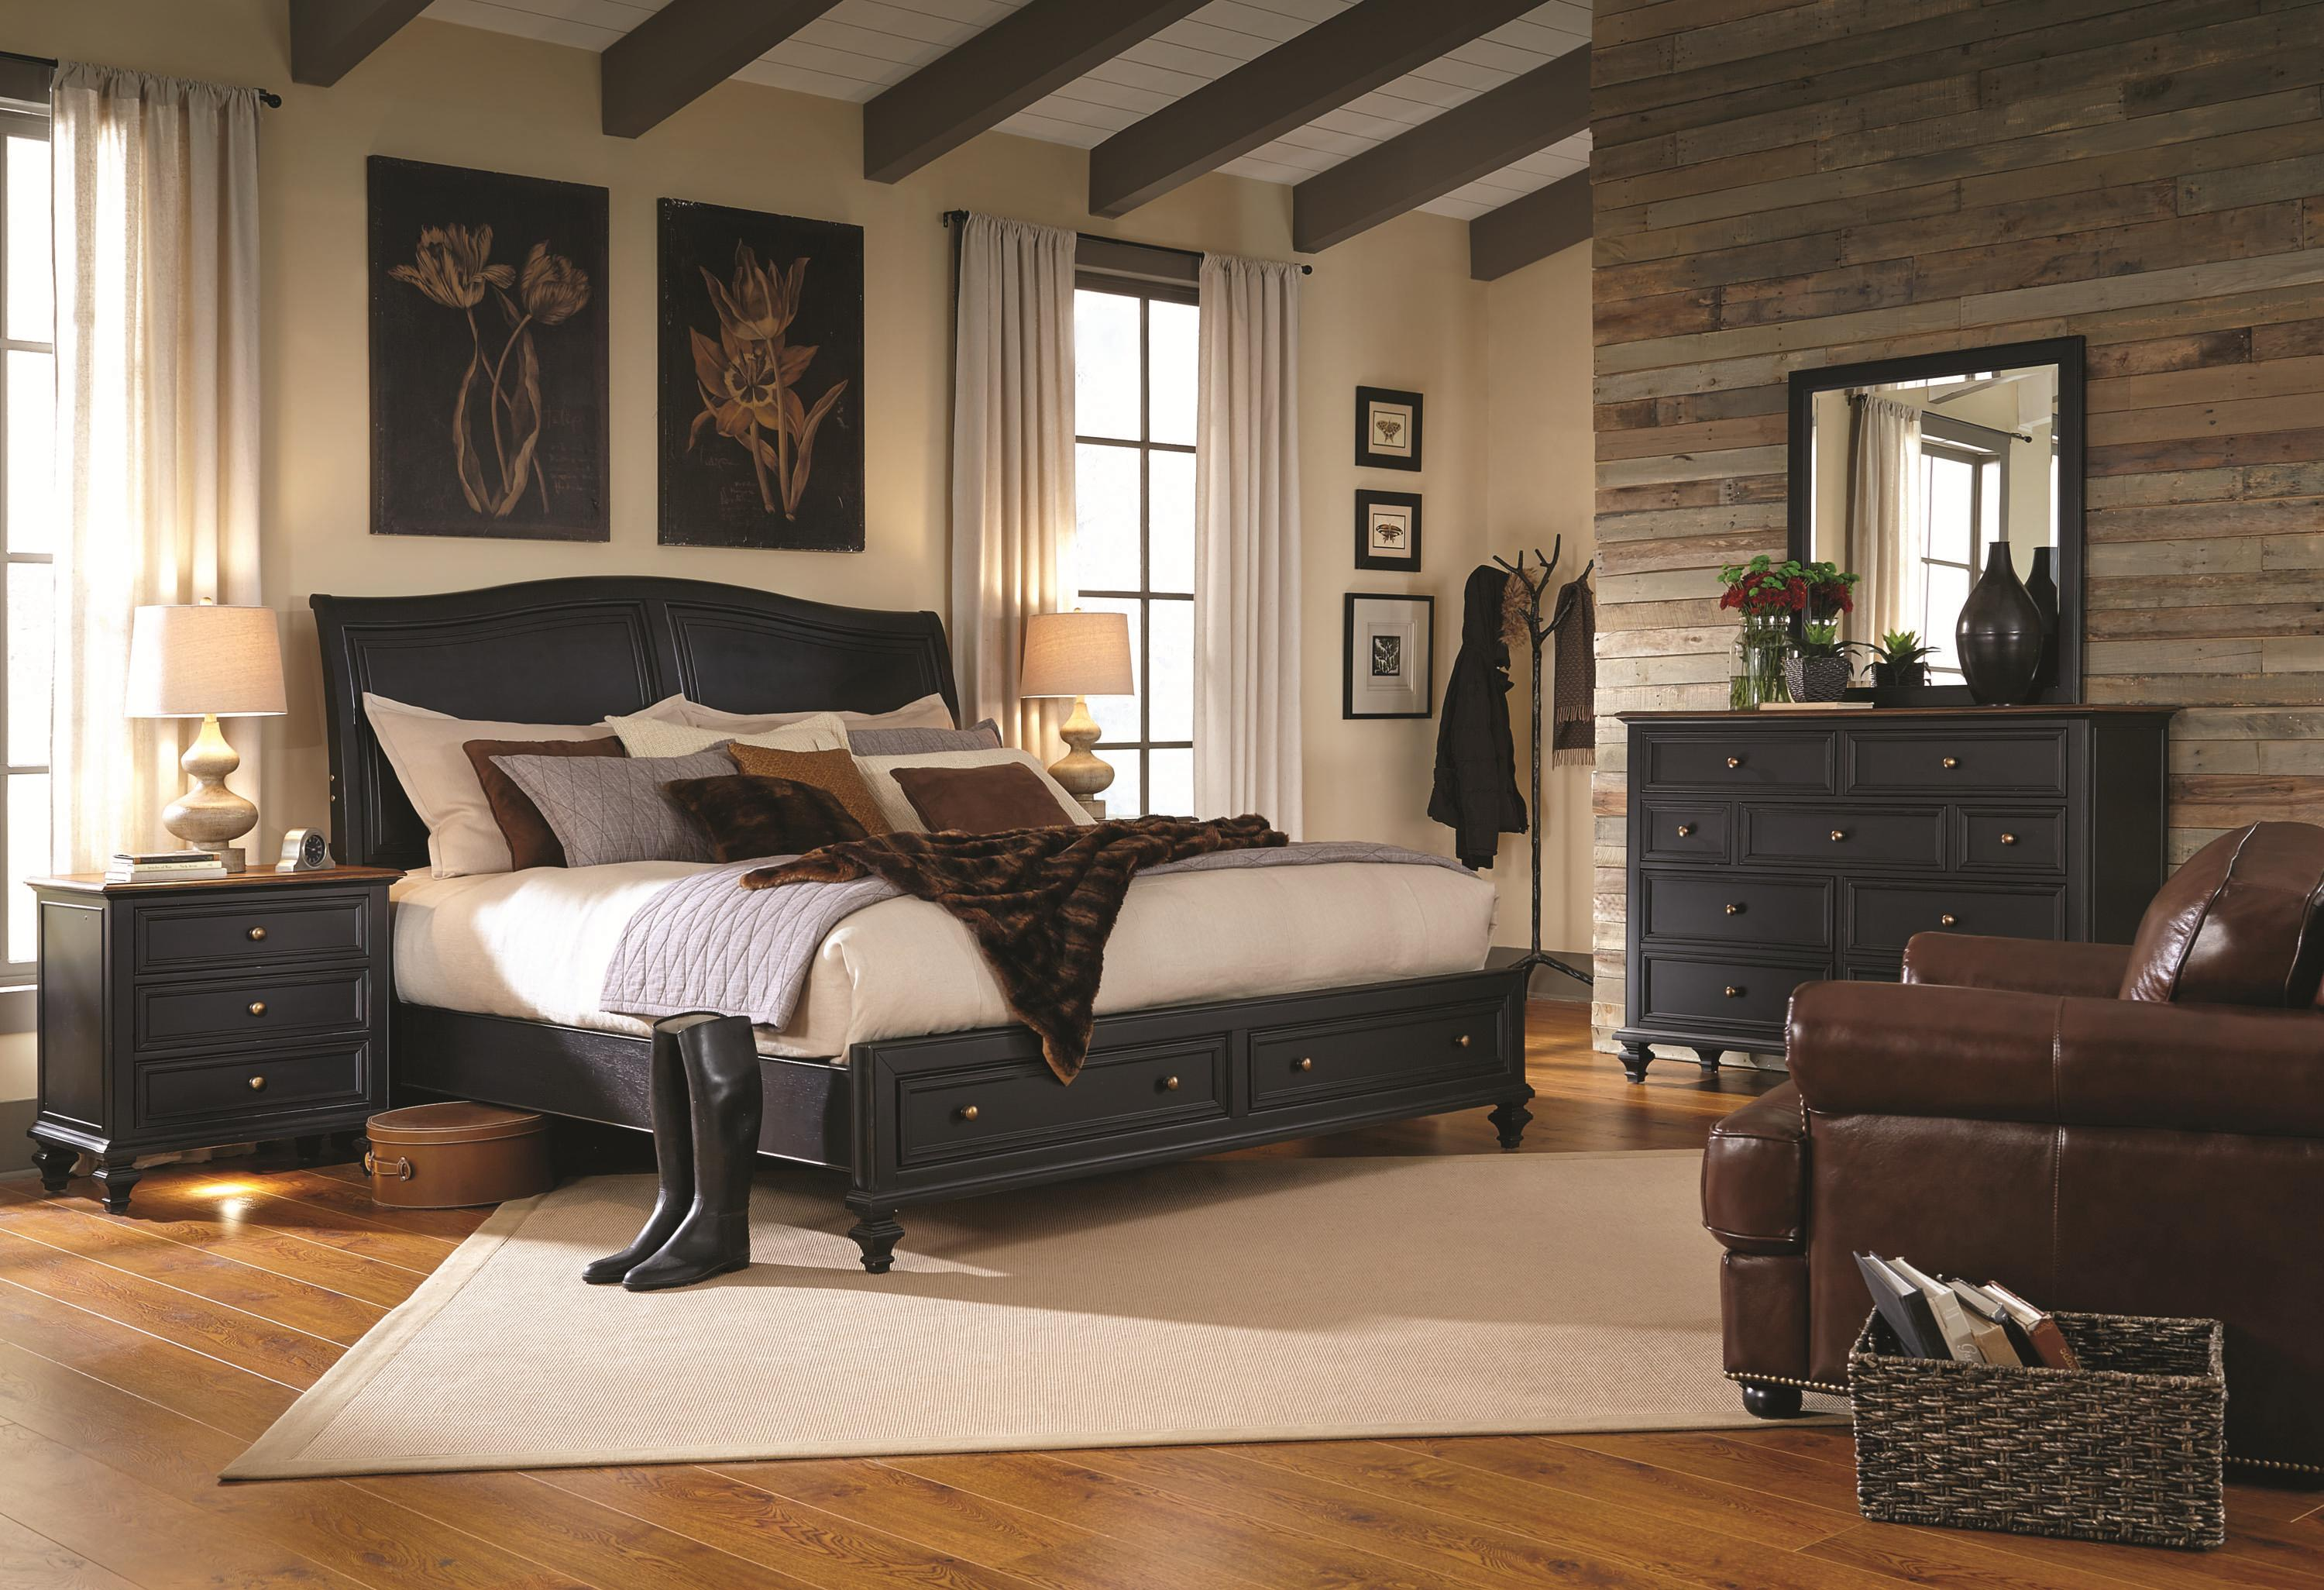 Aspenhome Ravenwood King Bedroom Group - Item Number: I65 King Bedroom Group 2